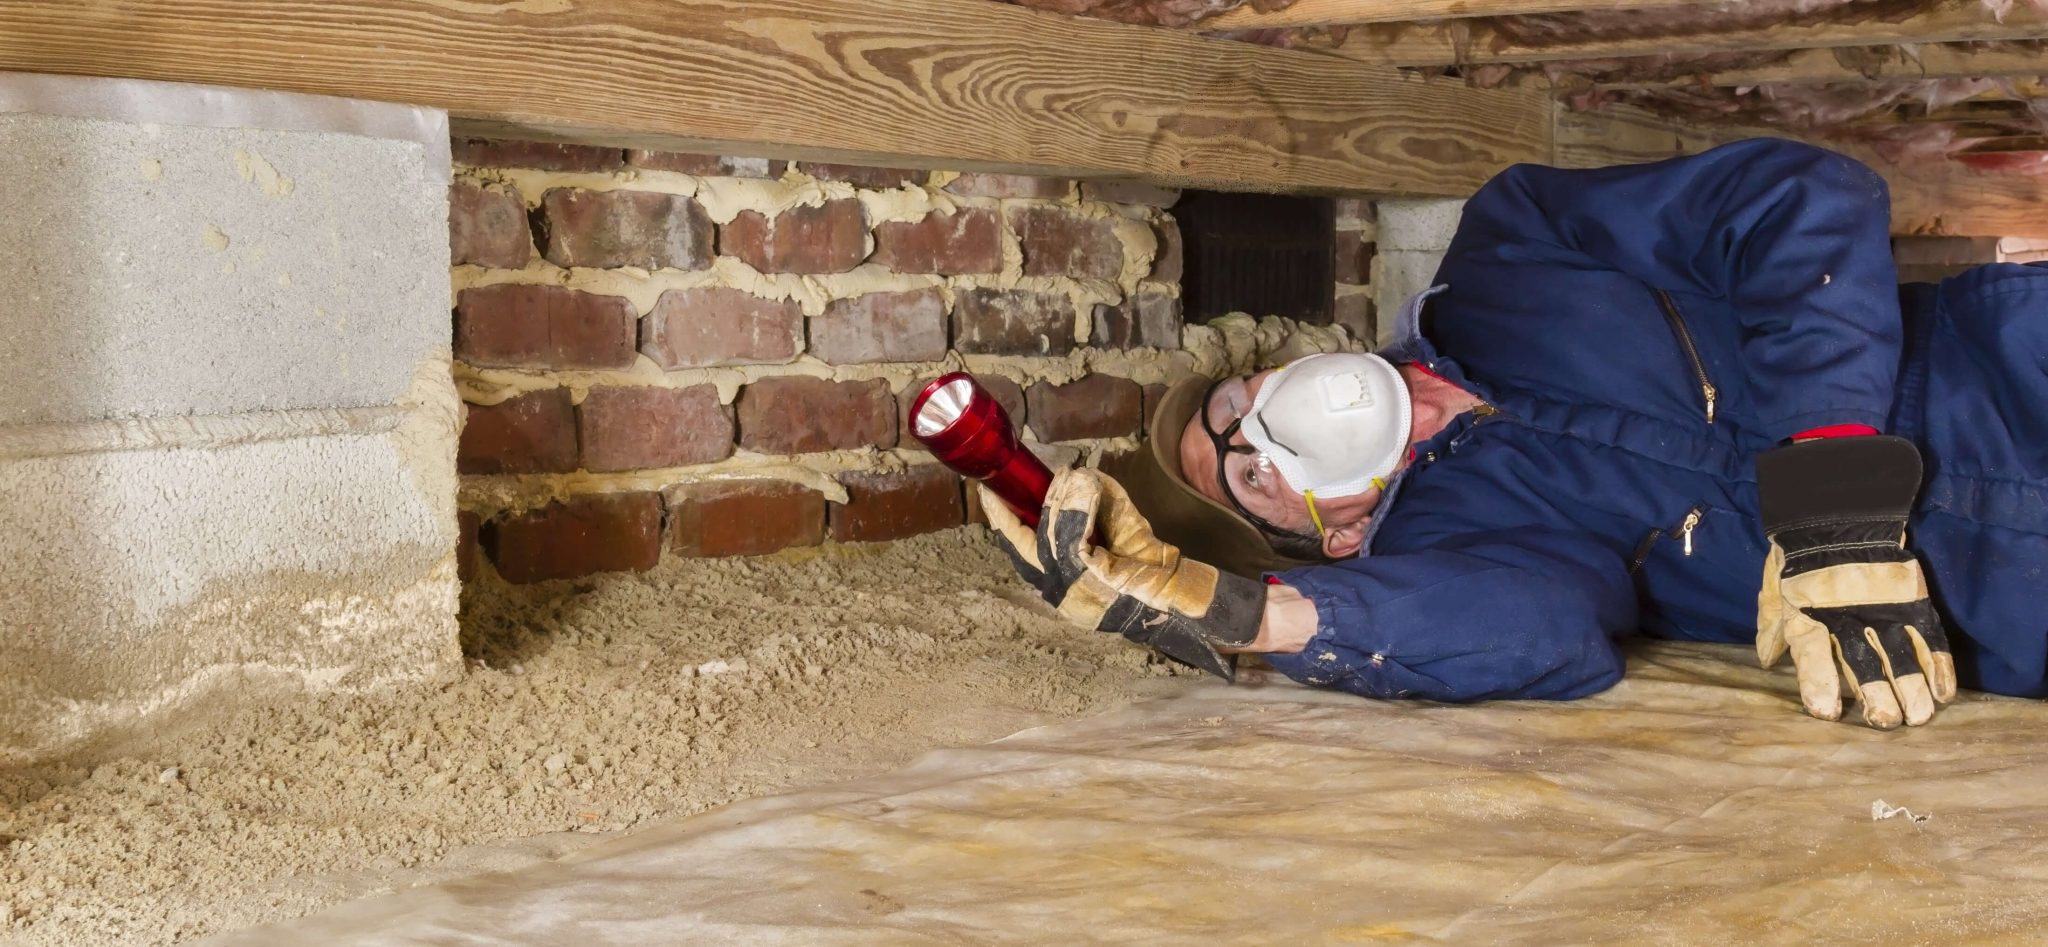 Your insulation needs replacing?Call a professional.